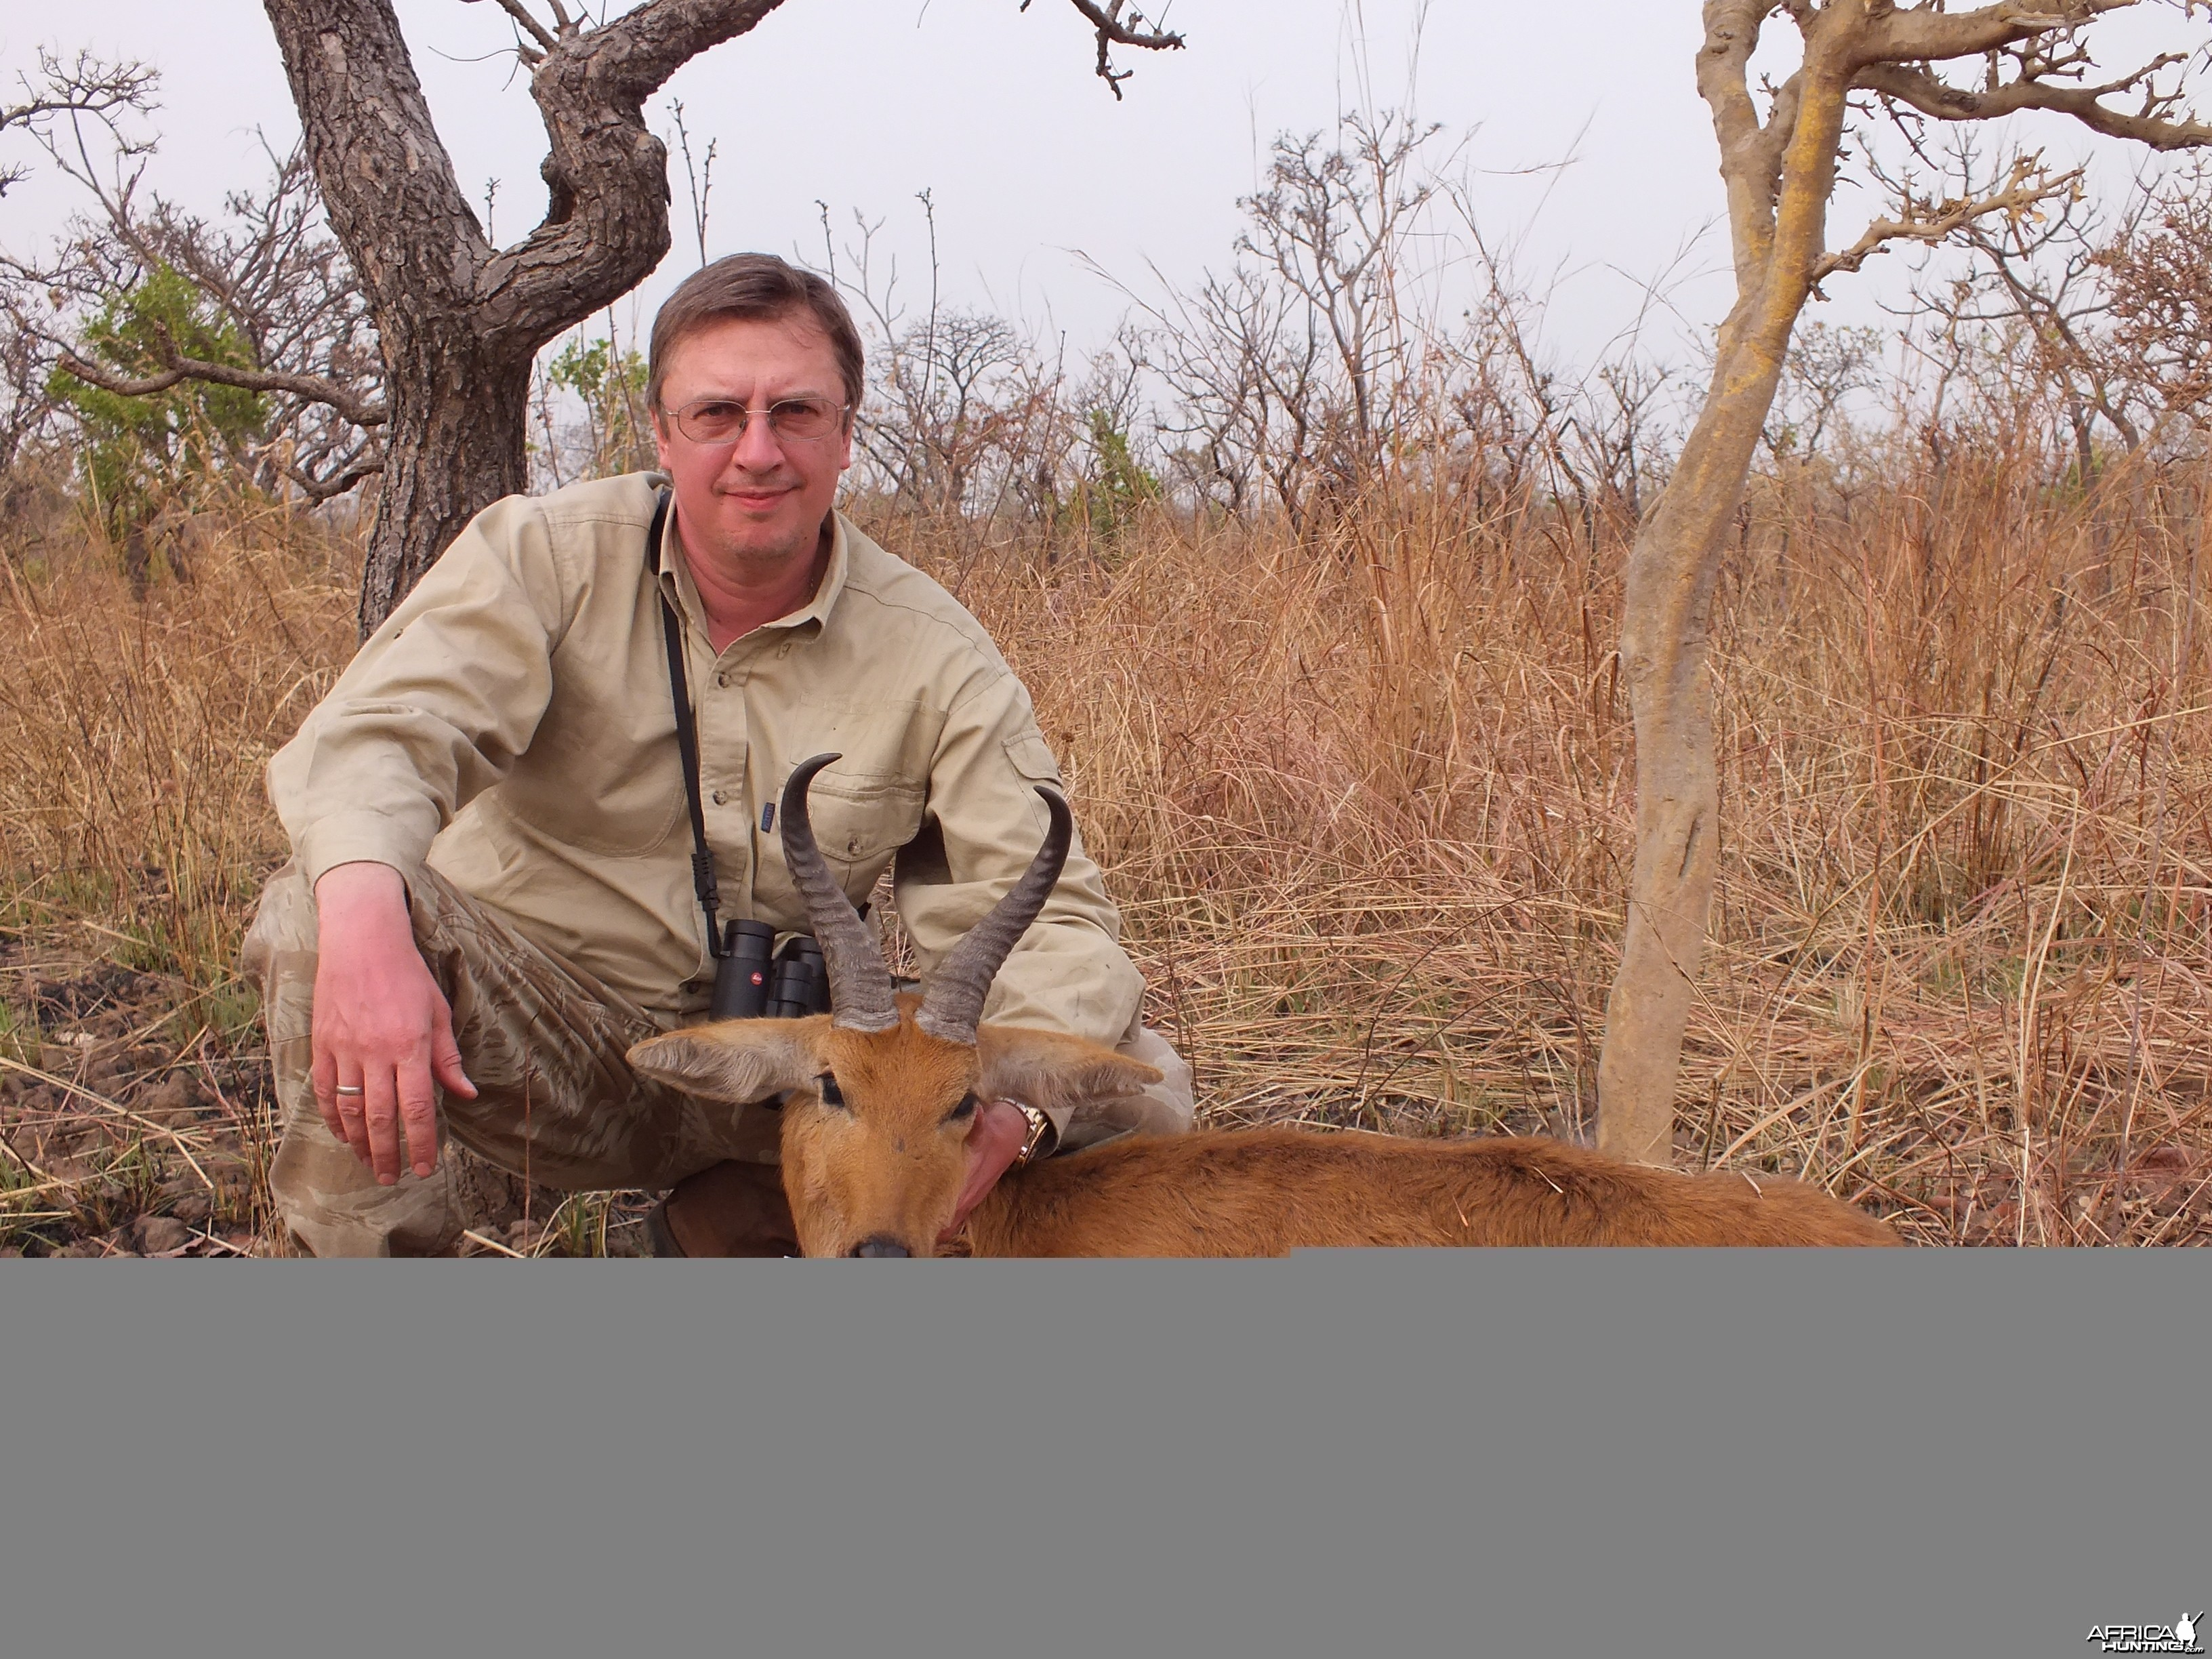 Bohor Reedbuck hunted in Cameroon with Club Faune